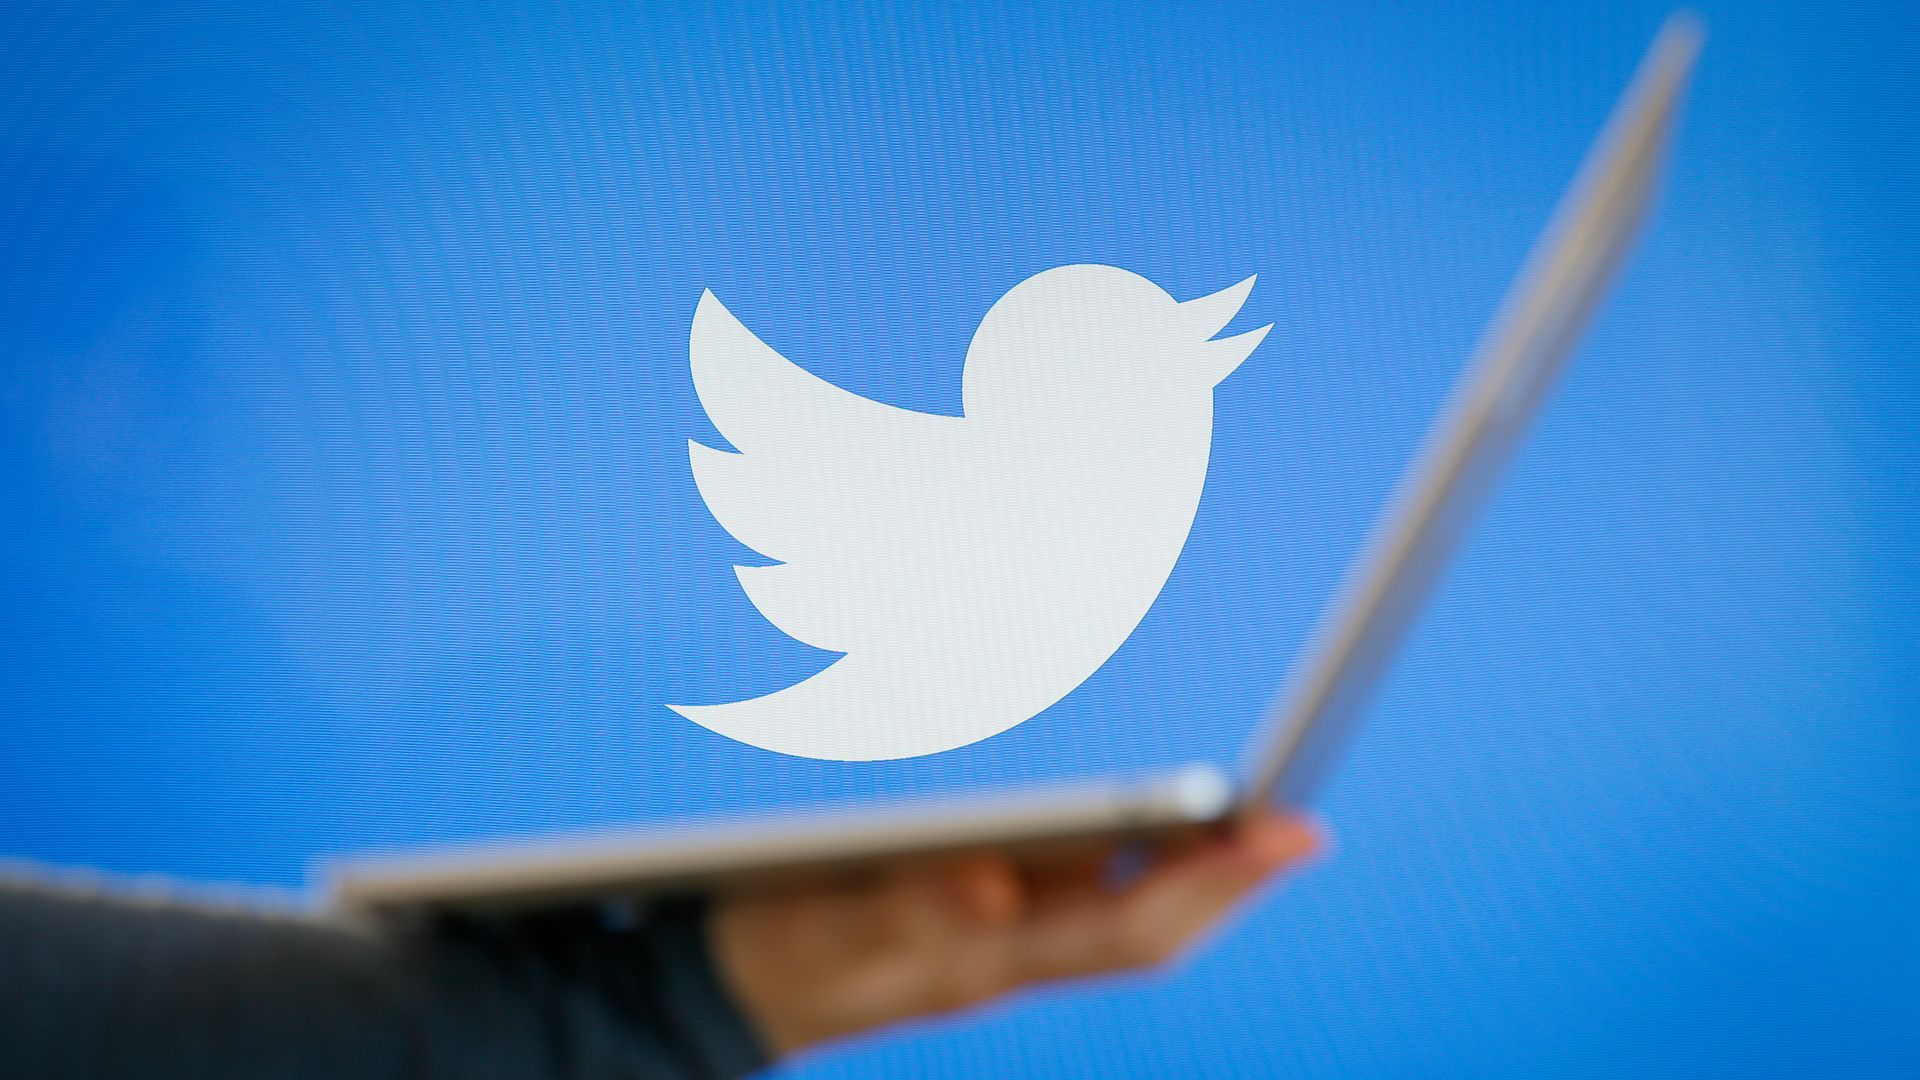 A Twitter logo bird in white on blue background, with an open laptop in front.